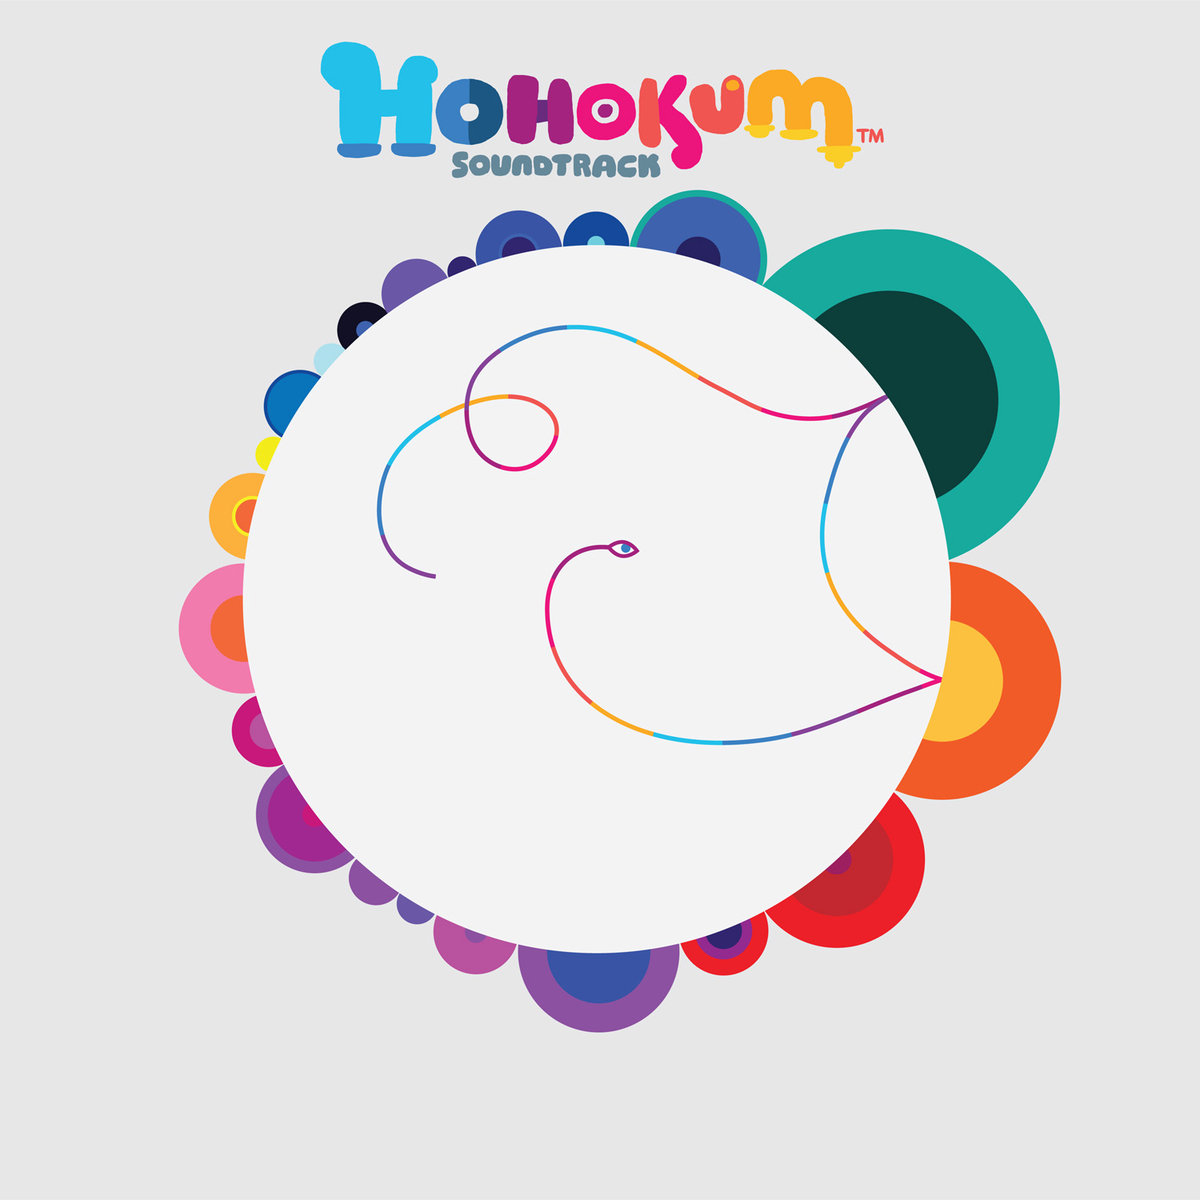 Hohokum Soundtrack.